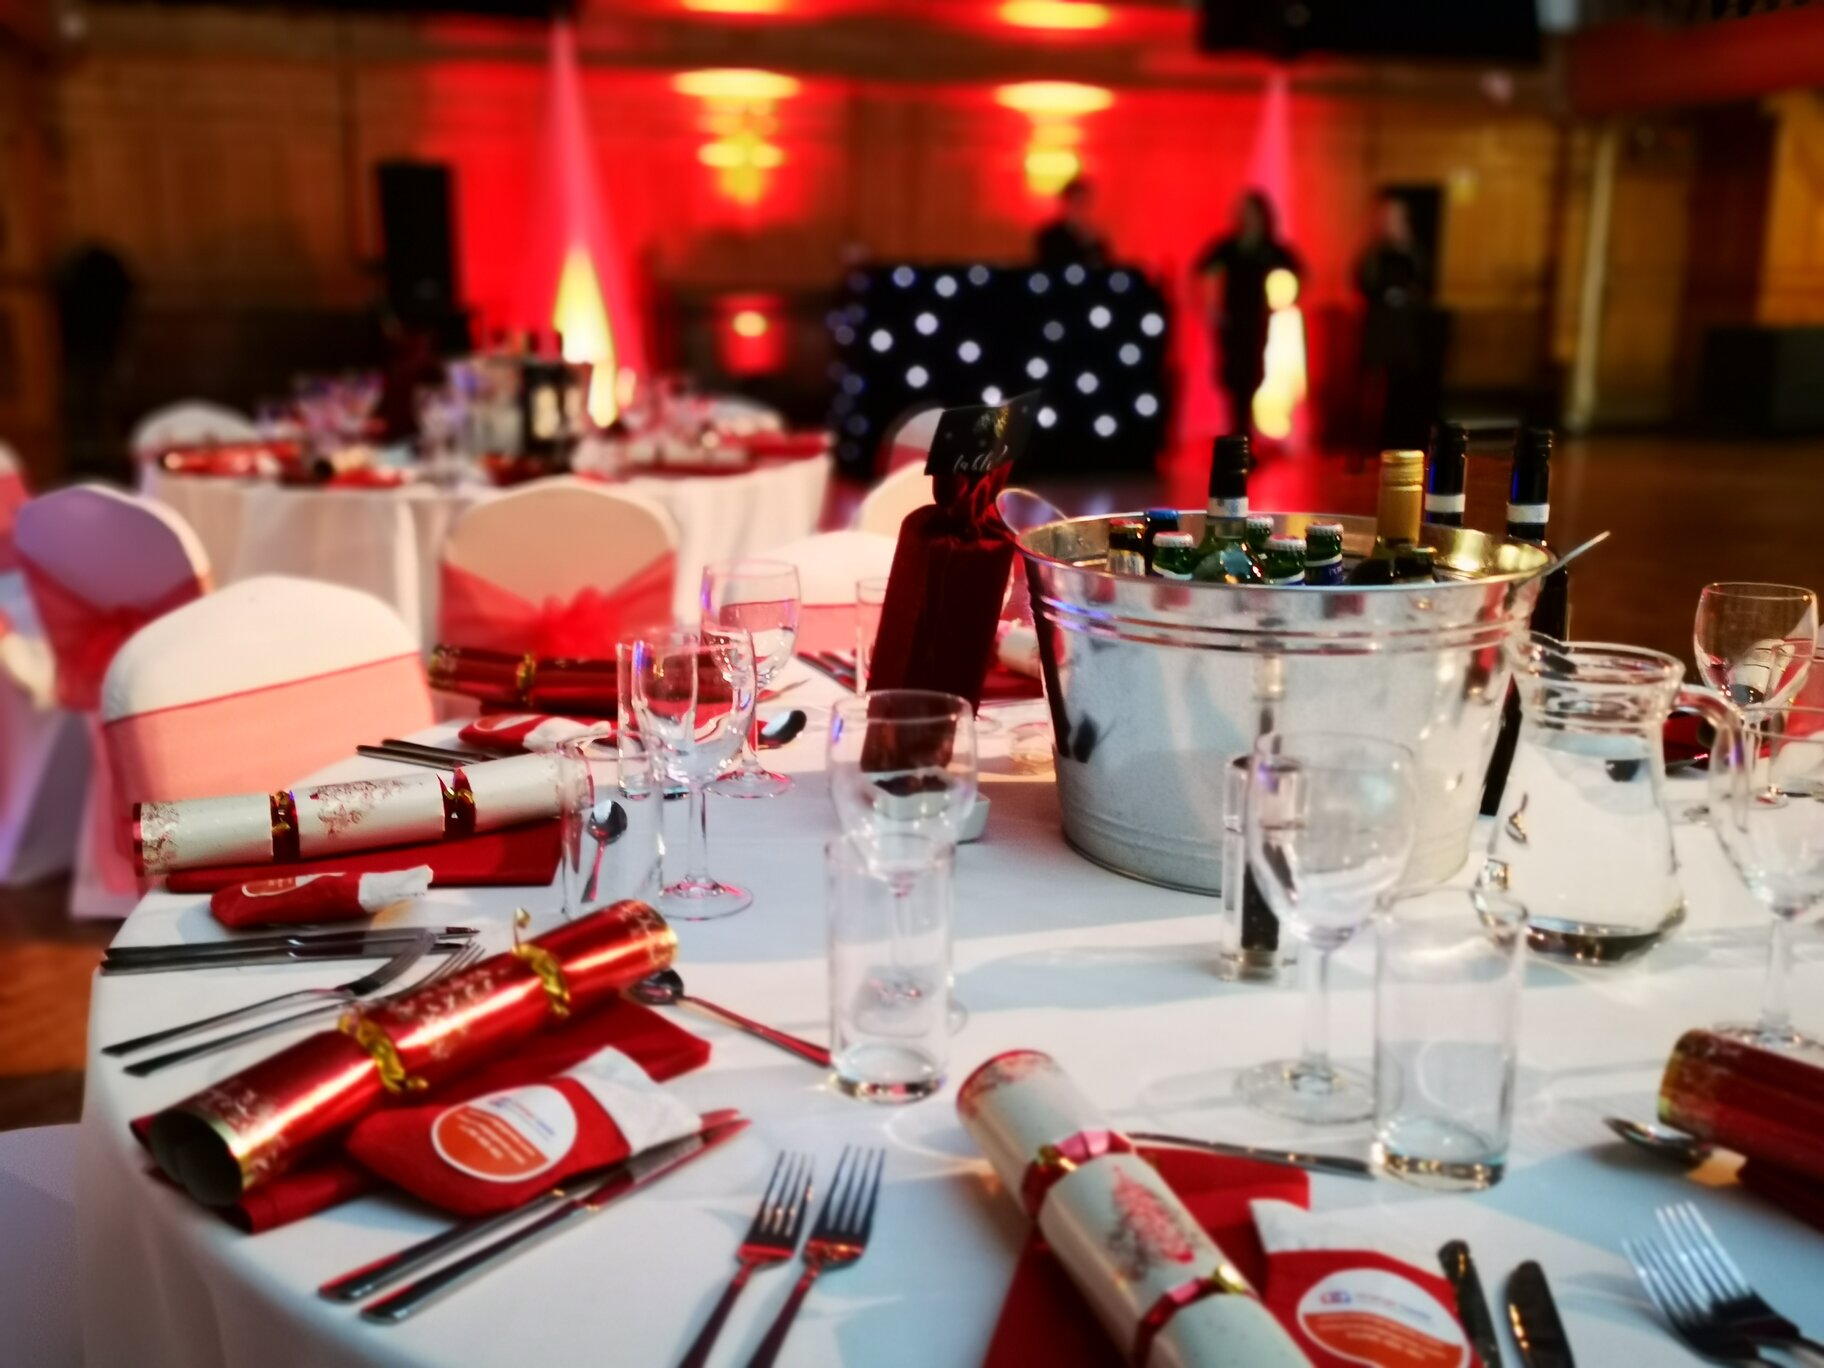 Parties at The Grand Hall Bedford